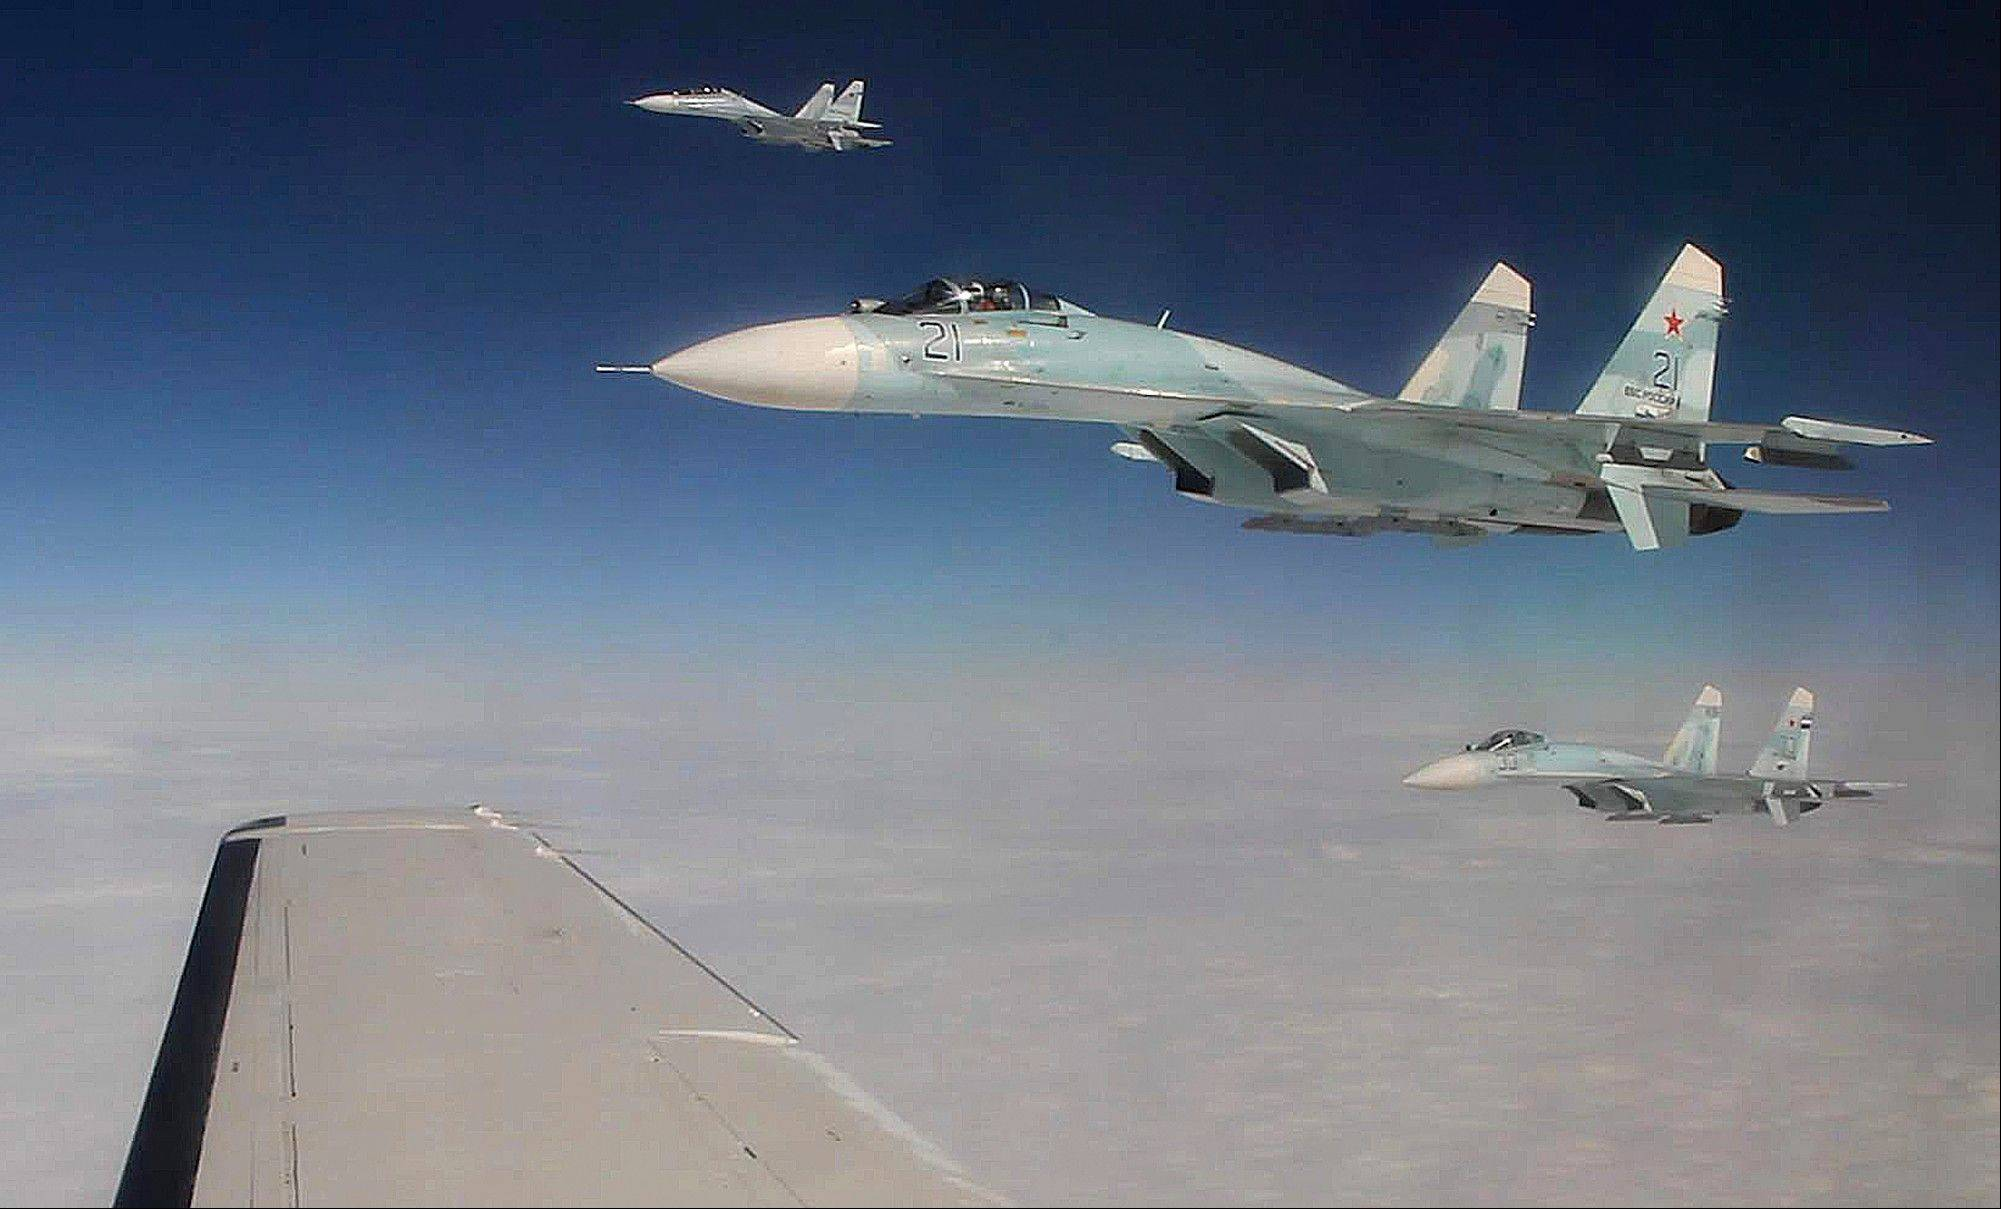 Three Russian Federation Air Force SU-27s intercept a passenger plane that was hijacked during a simulation to test the response of NORAD and Russian Federation forces. The exercise among Canadian and U.S. forces from NORAD, along with the Russian Federation, saw the Canadians successfully hand off the hijacked plane to Russian fighters over the Bering Strait.